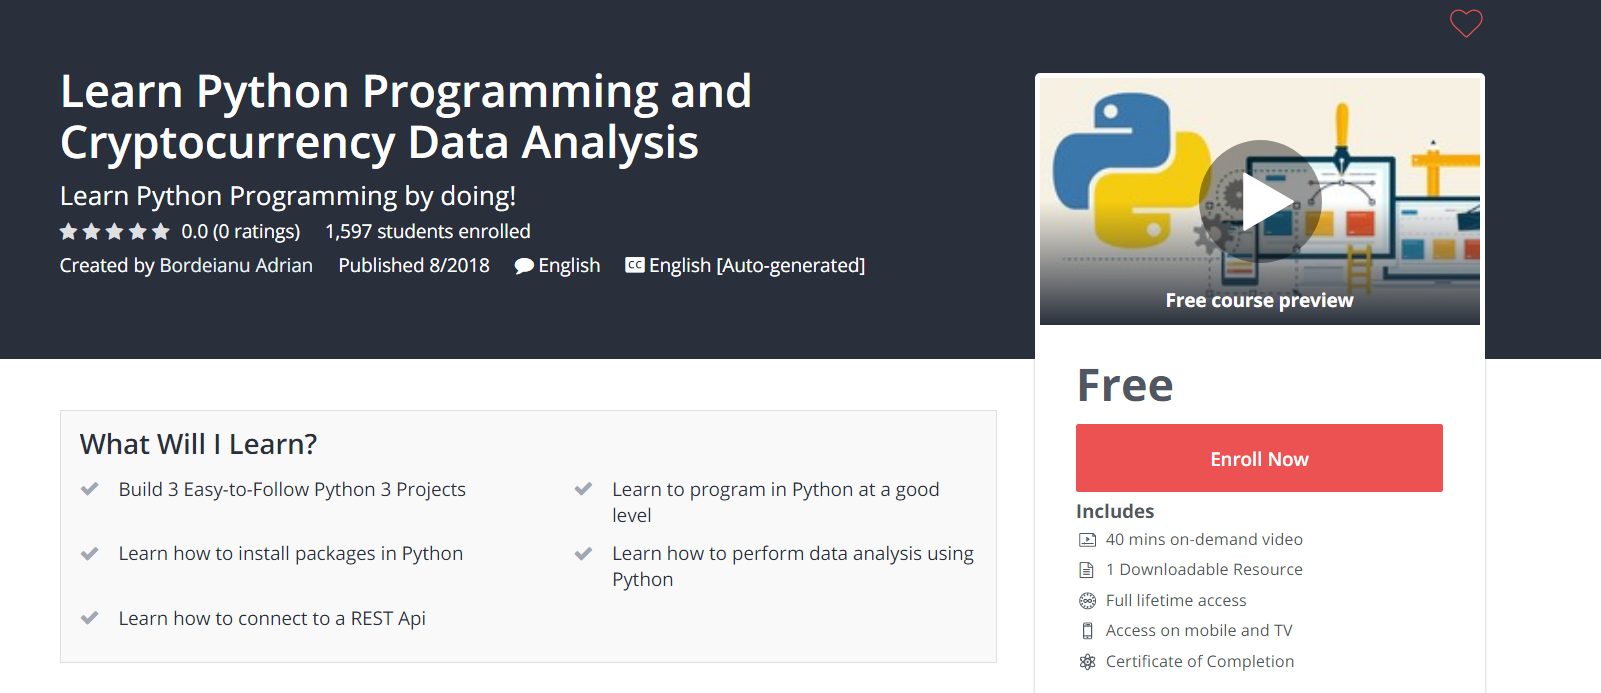 Learn #Python #Programming and #Cryptocurrency #Data